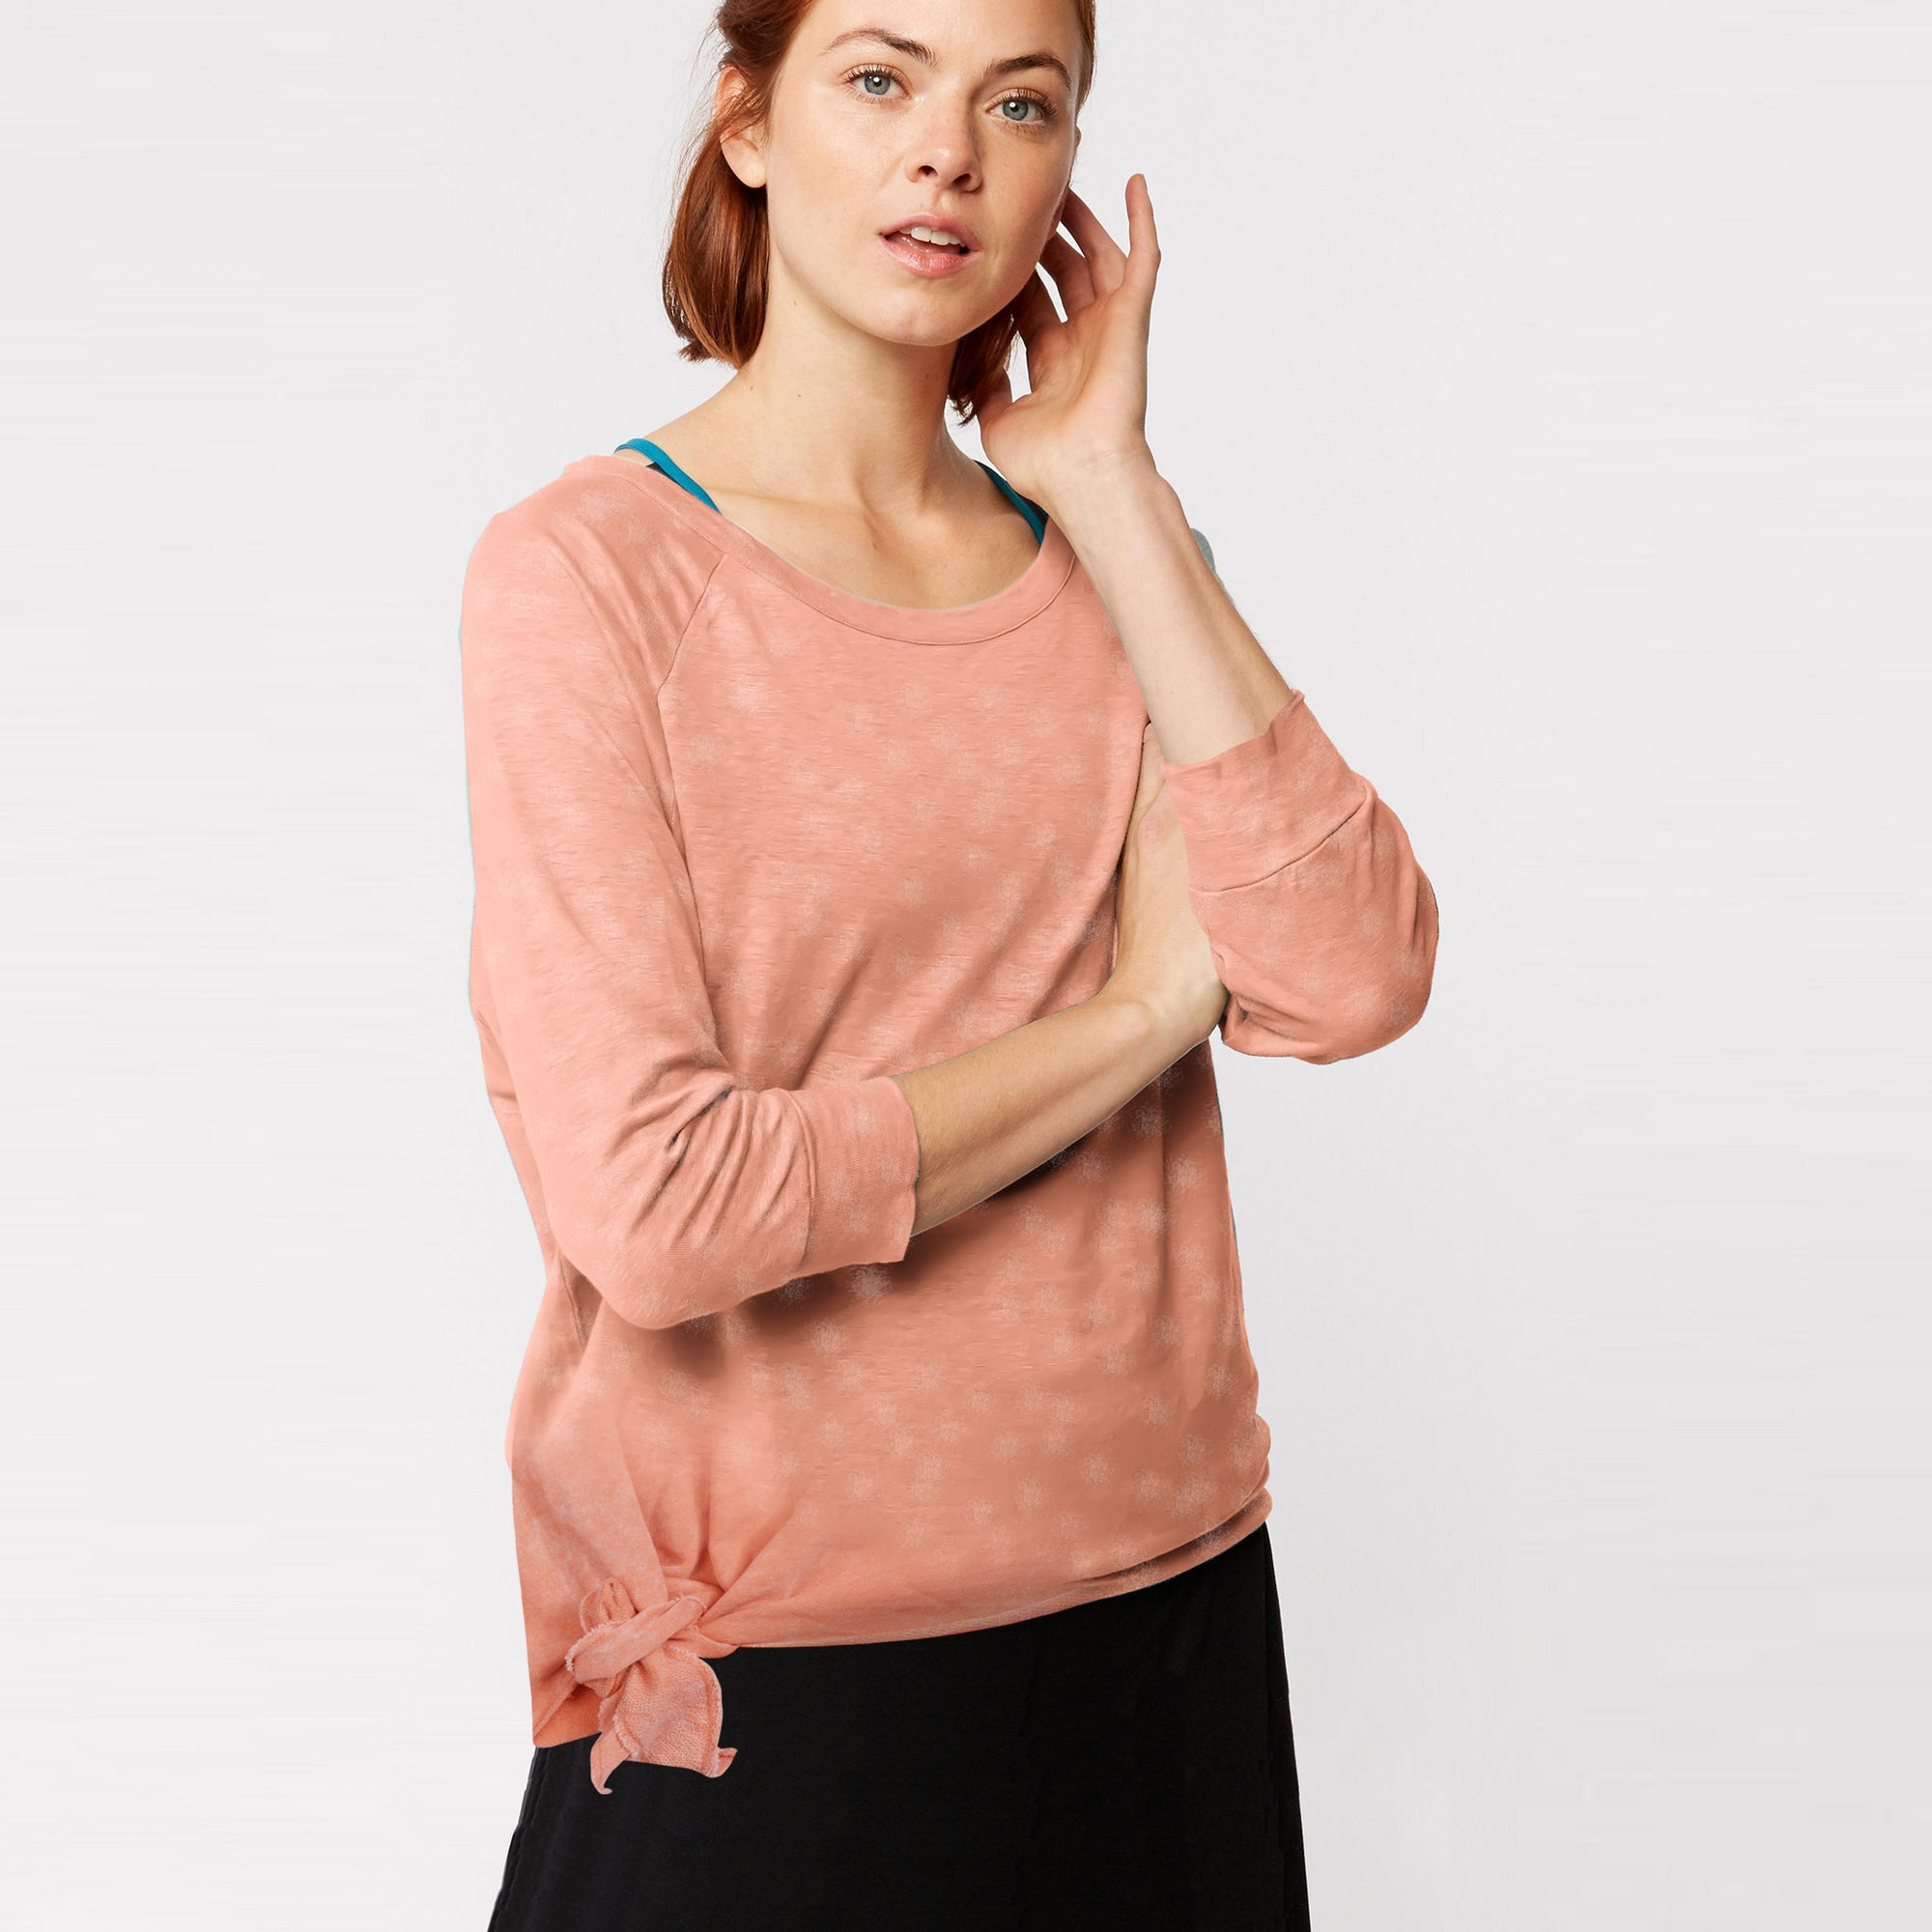 c8a3ddb6b13e4e Fat Face Terry Summer Long Sleeve Stylish Blouse For Ladies-Light Peac -  BrandsEgo